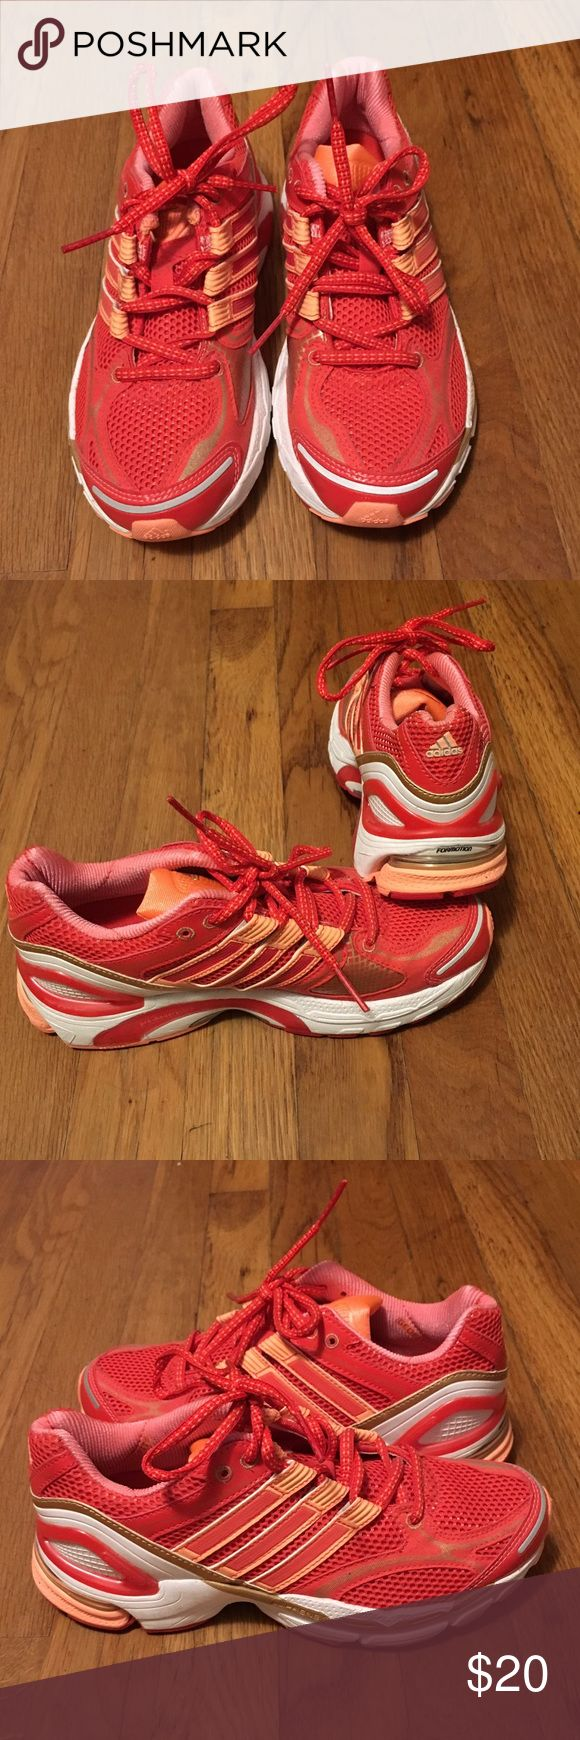 Adidas Supernova Sequence Sneaker Hot pink/coral running shoe. Hardly worn. Great condition. Adidas Shoes Sneakers